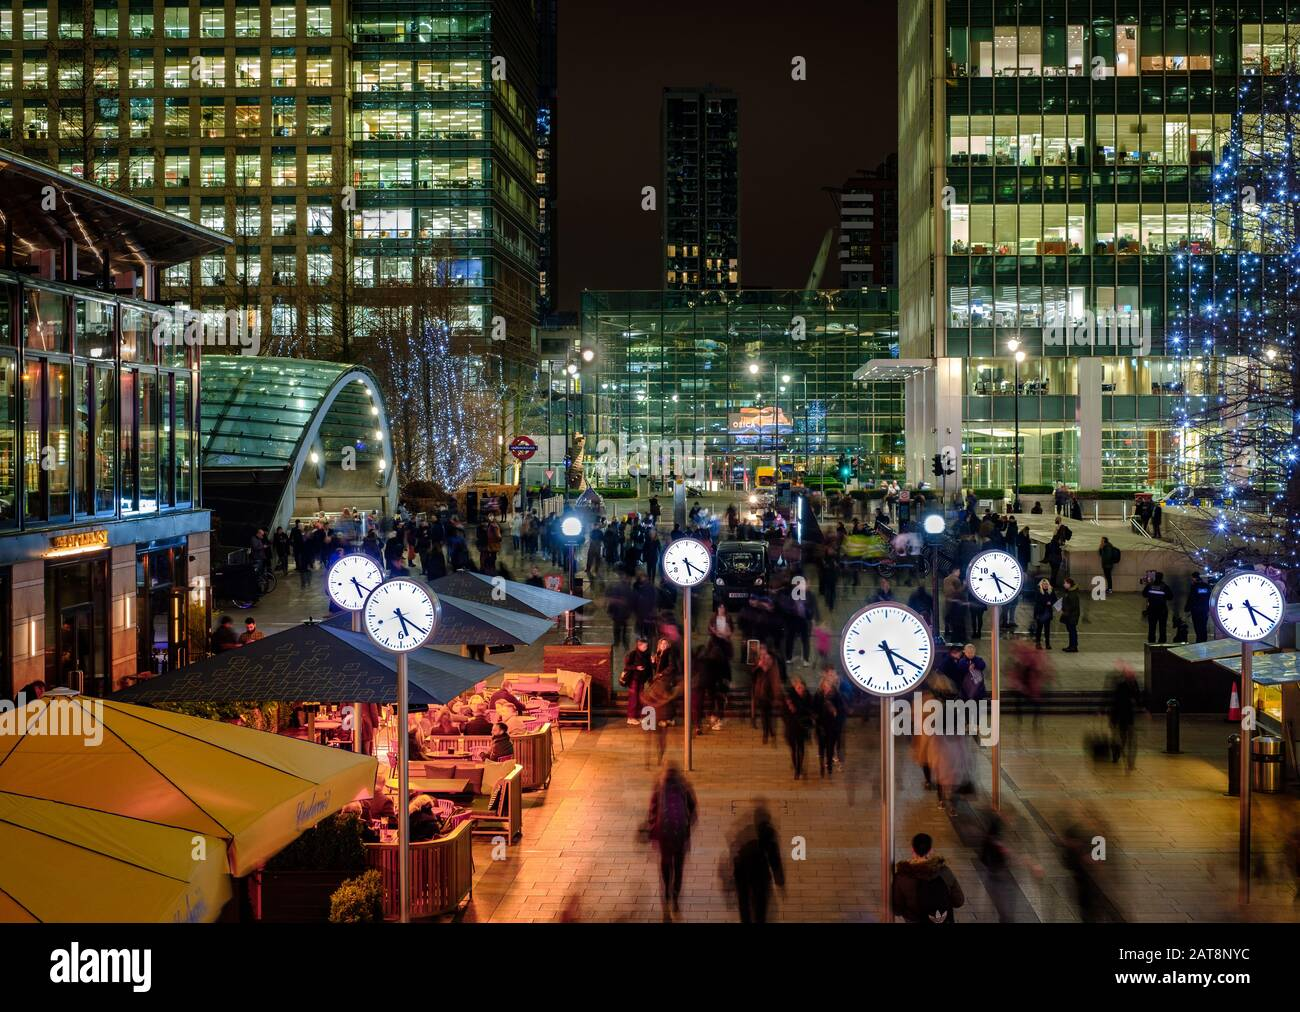 Reuters Plaza at Canary Wharf by night, winter 2019 Stock Photo